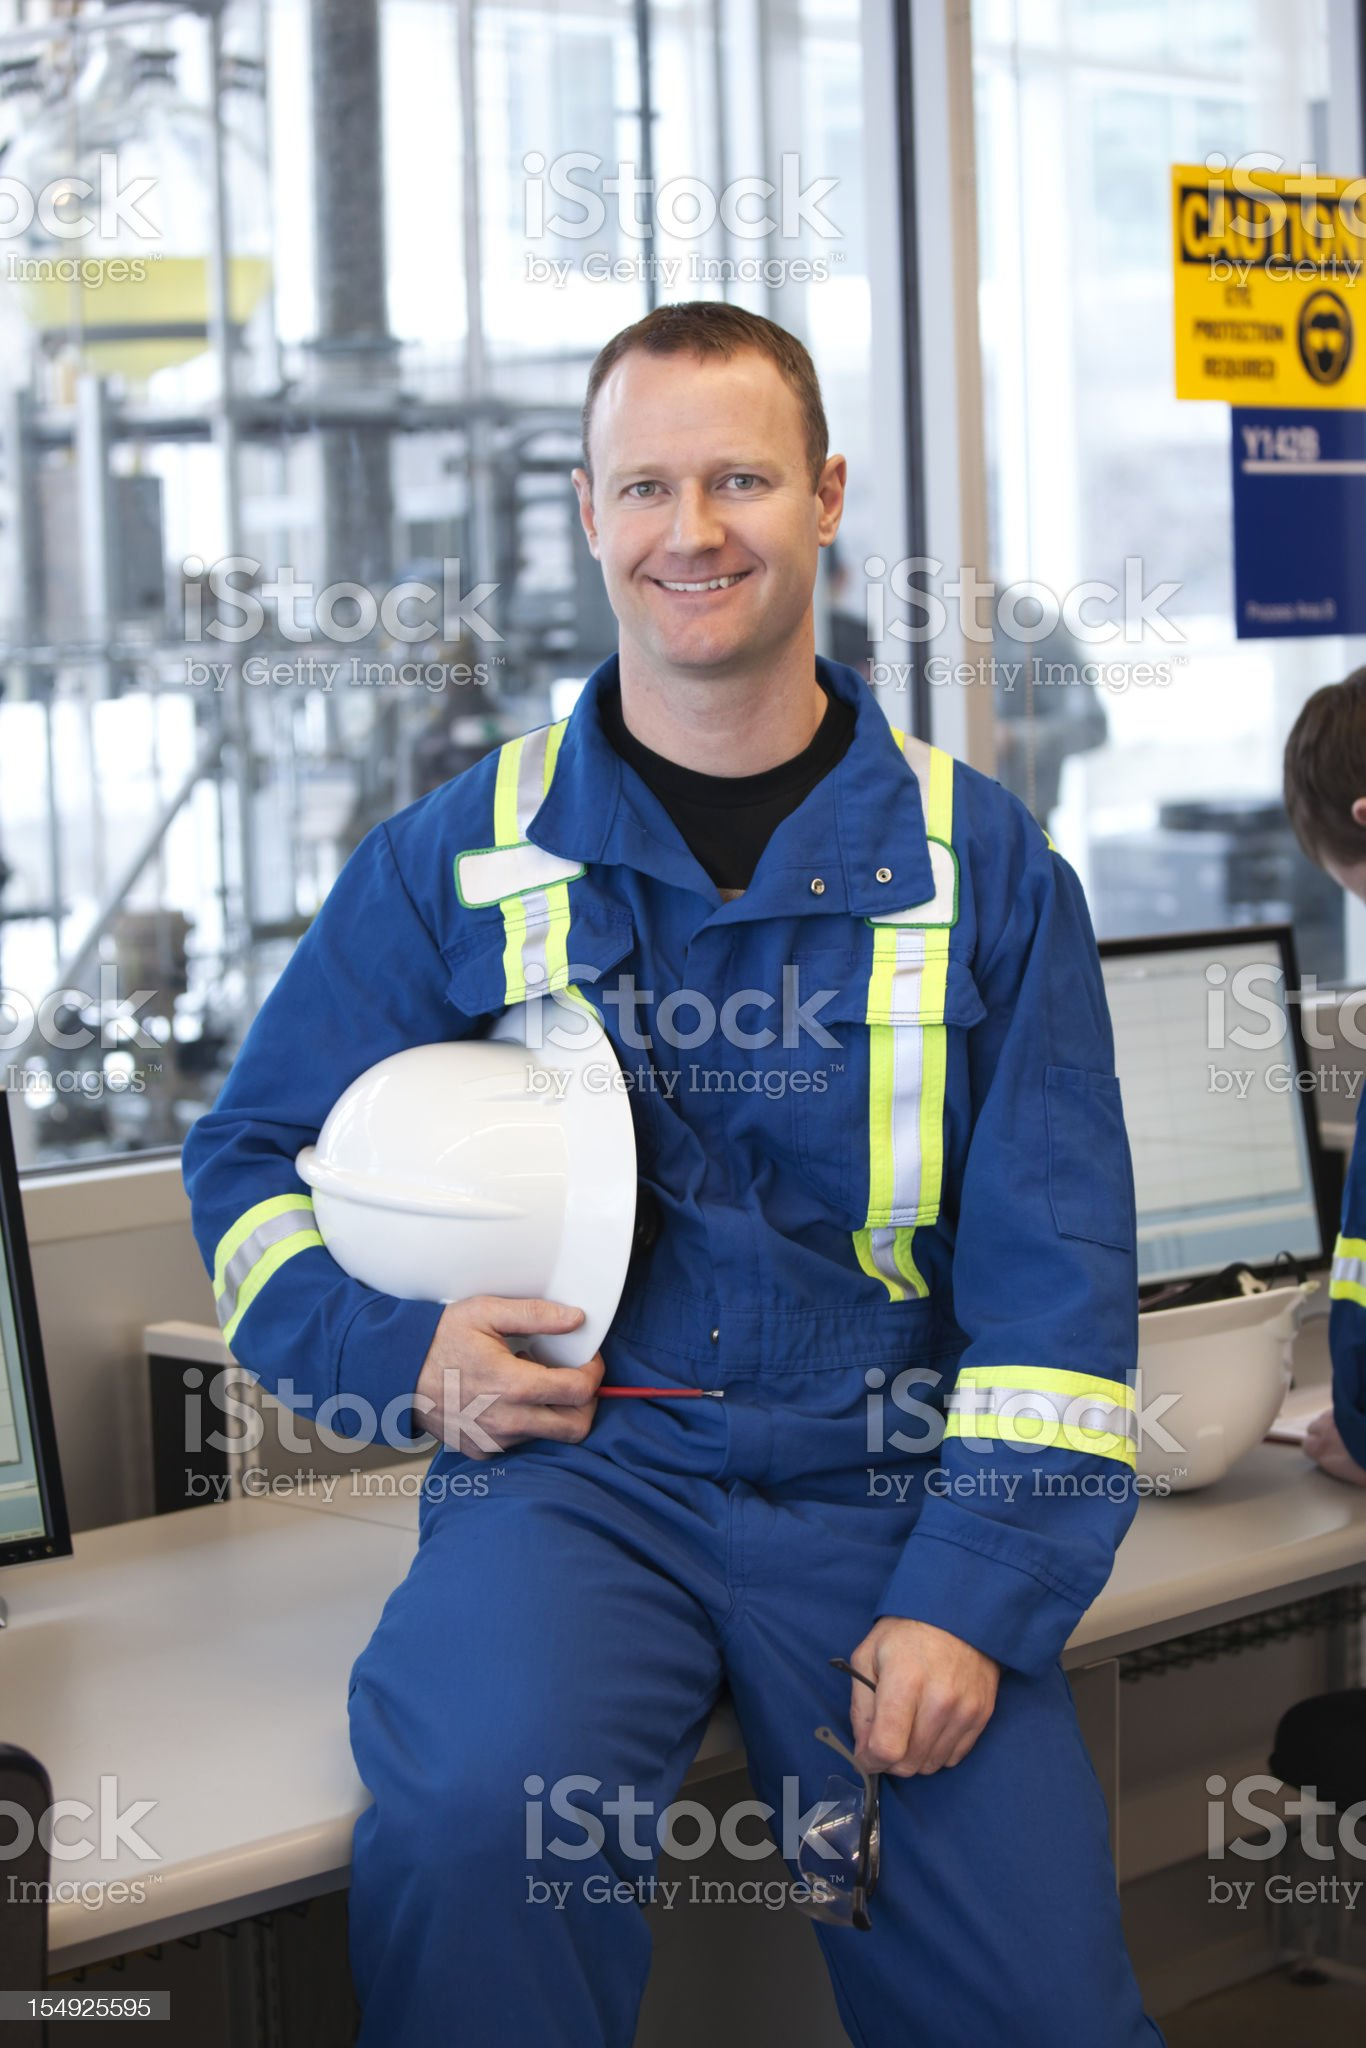 Industrial Worker with Equipment royalty-free stock photo